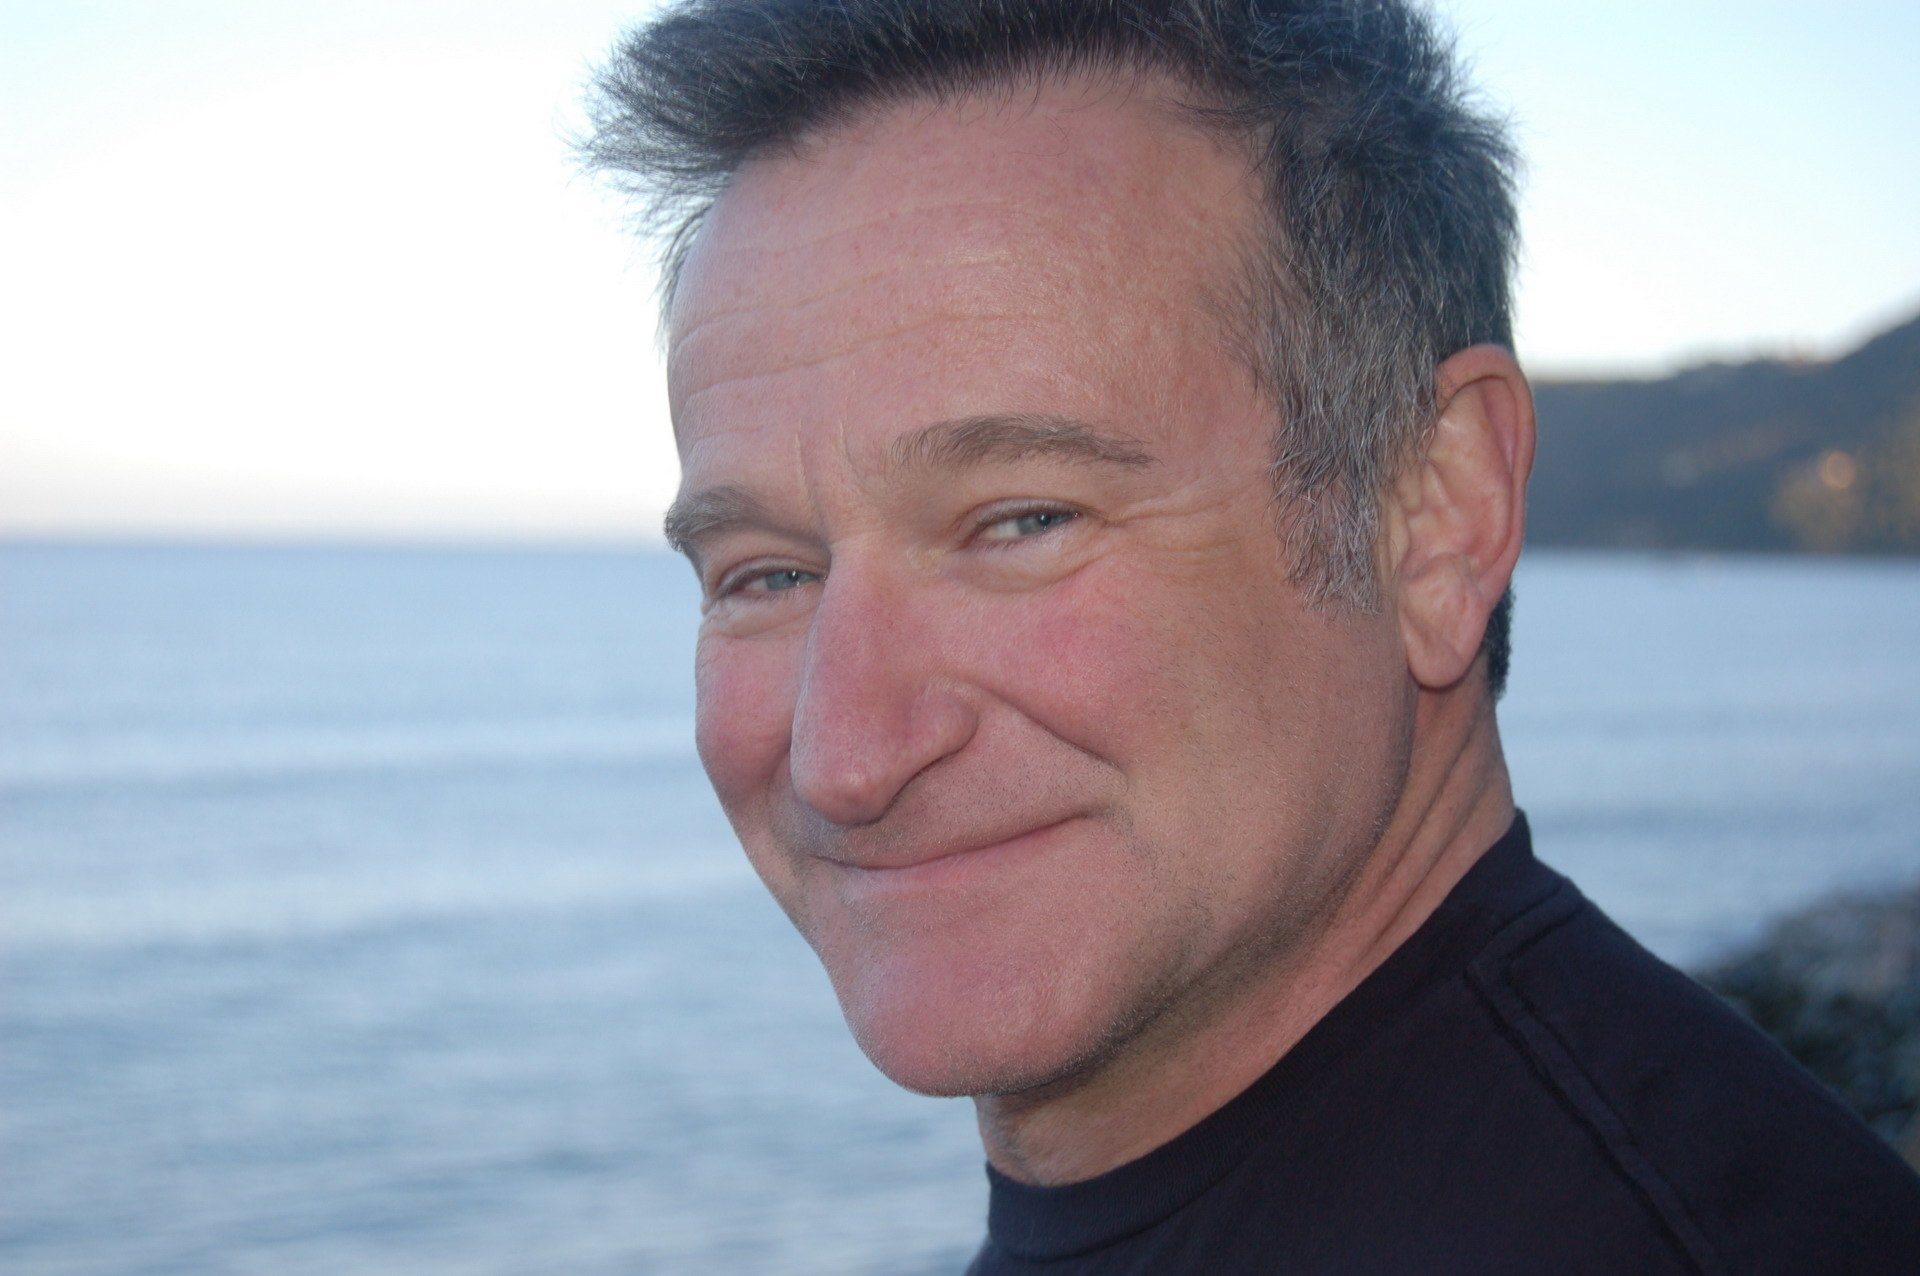 35 robin williams hd wallpapers | background images - wallpaper abyss